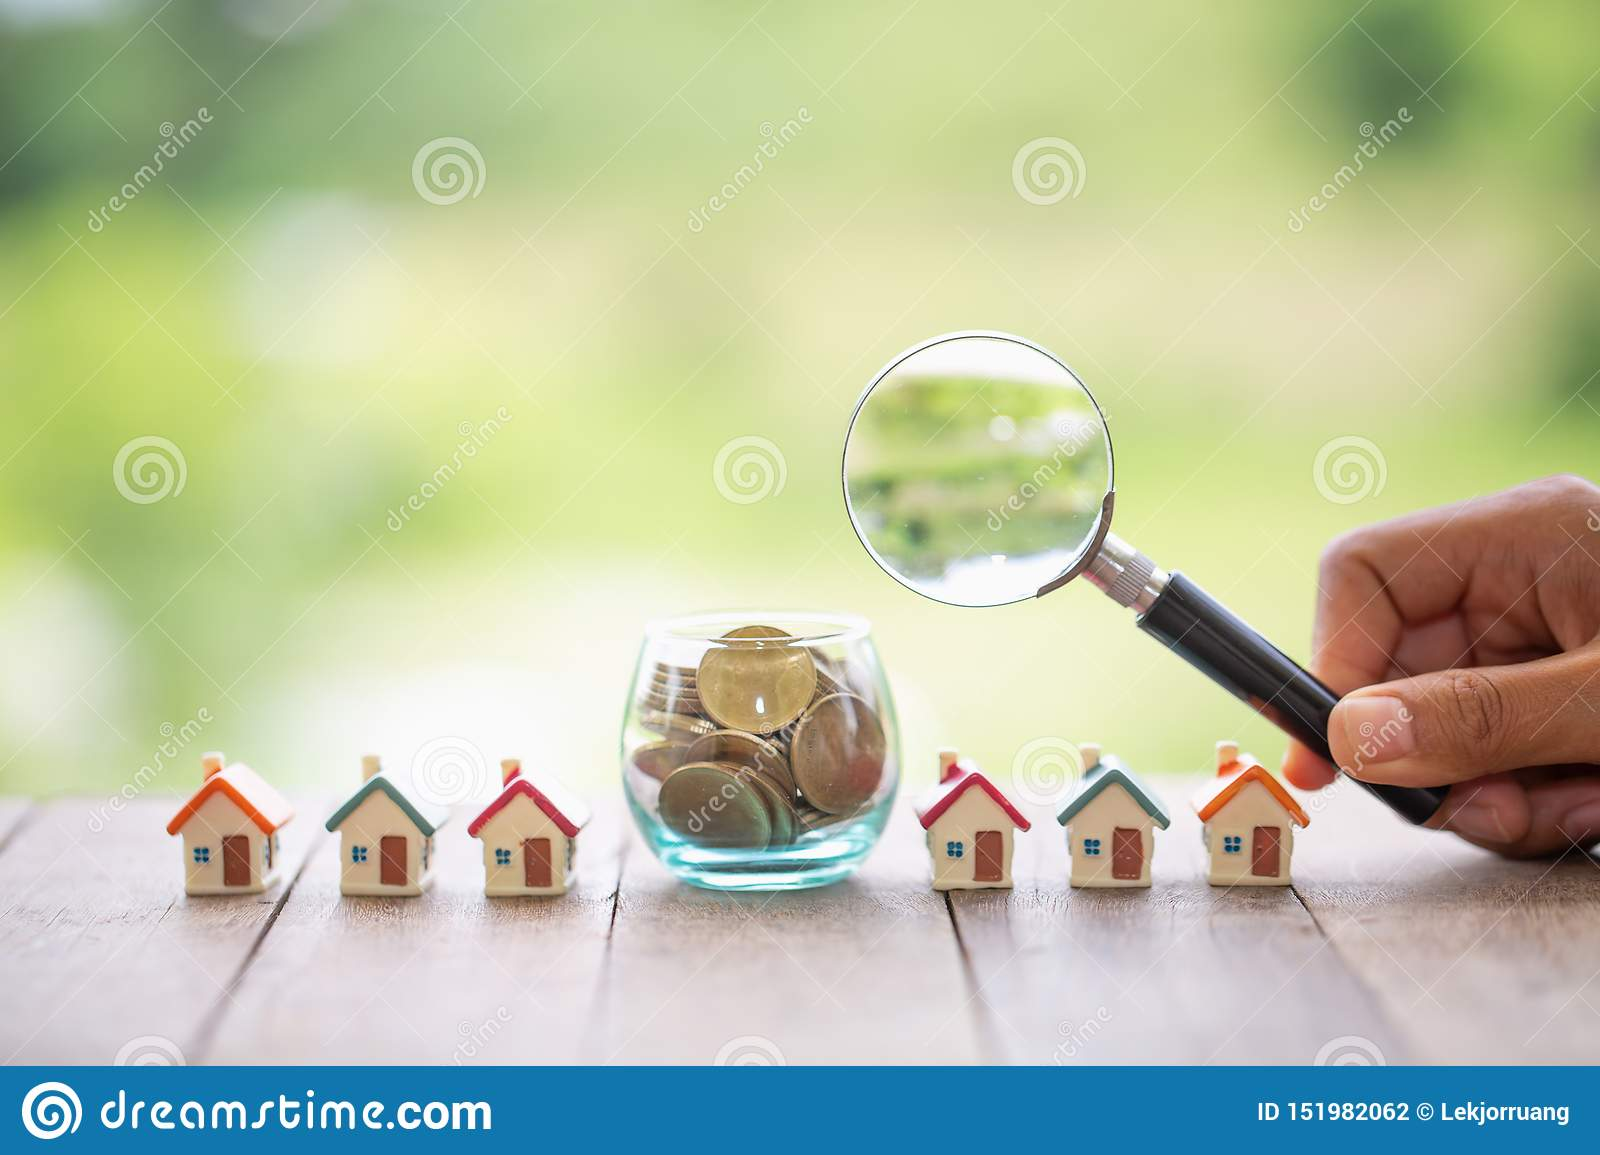 Concept of a mortgage, a coin, a model of a house and a magnifying glass, house and money. magnifying glass and coins,